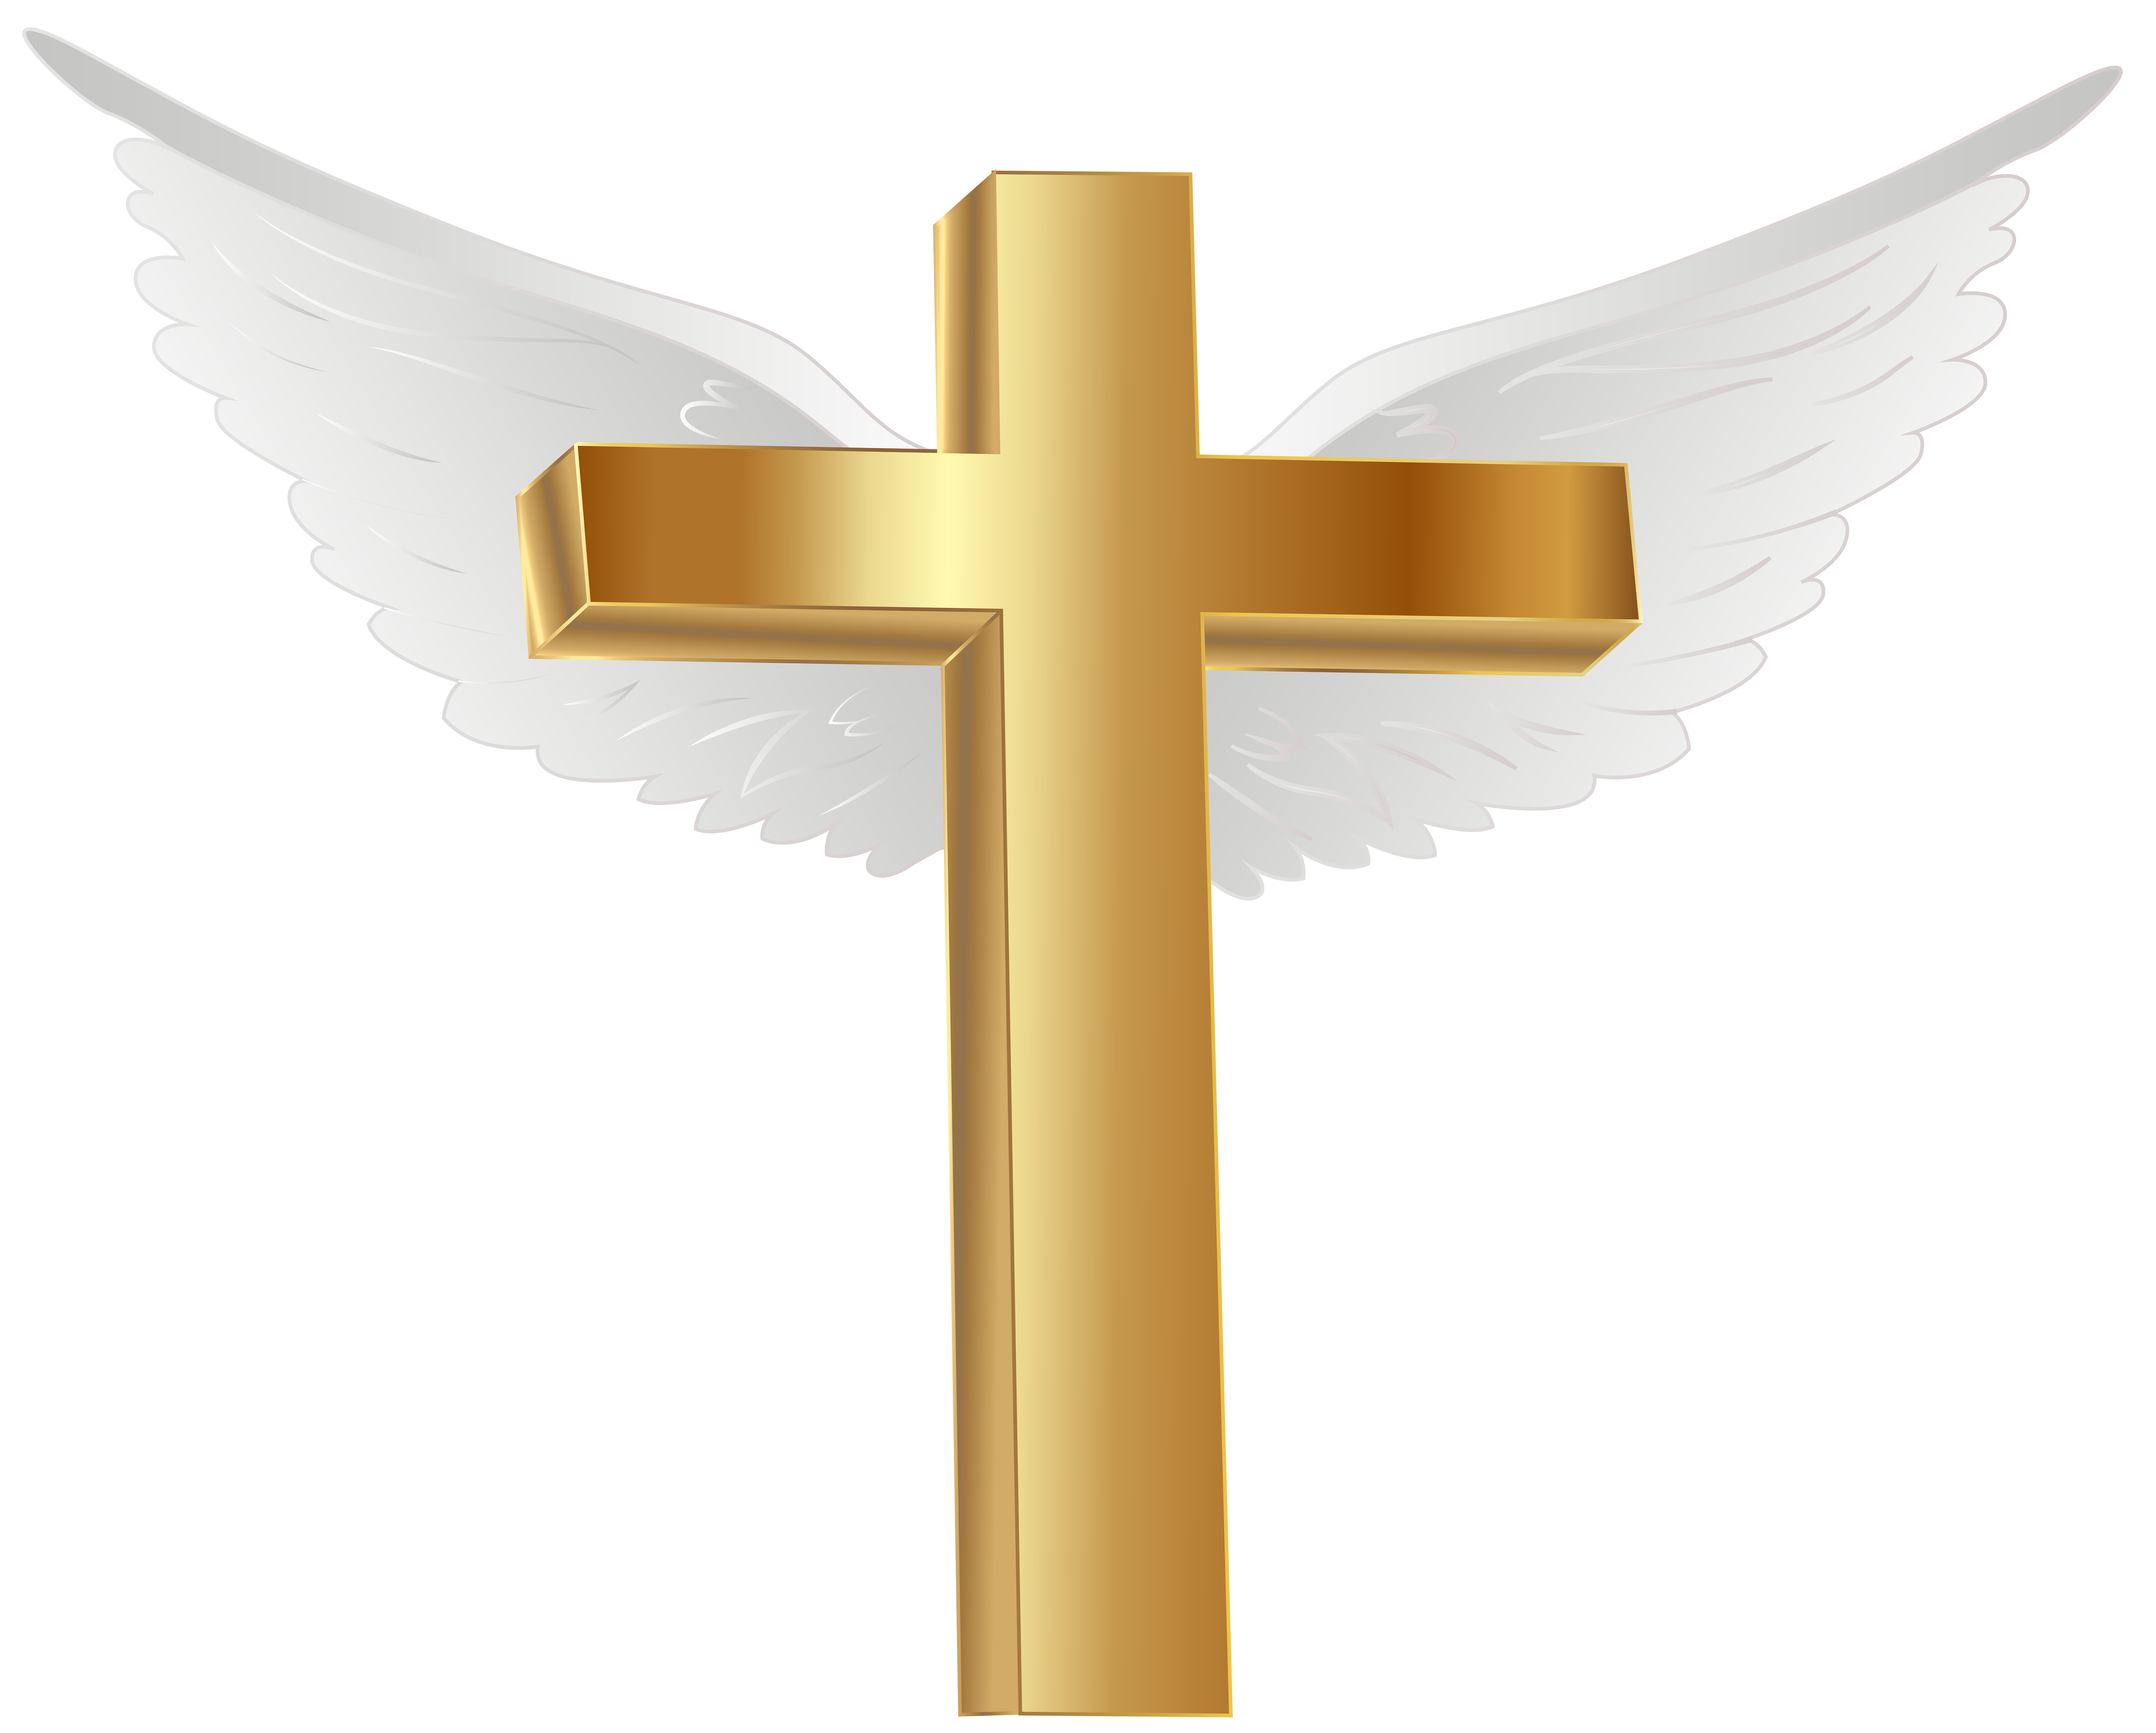 Gold Cross With Angel Wings Png Clip Art Image Gallery Yopriceville High Quality Images And Transparent Png Free Clip Angel Wings Png Wings Png Art Images